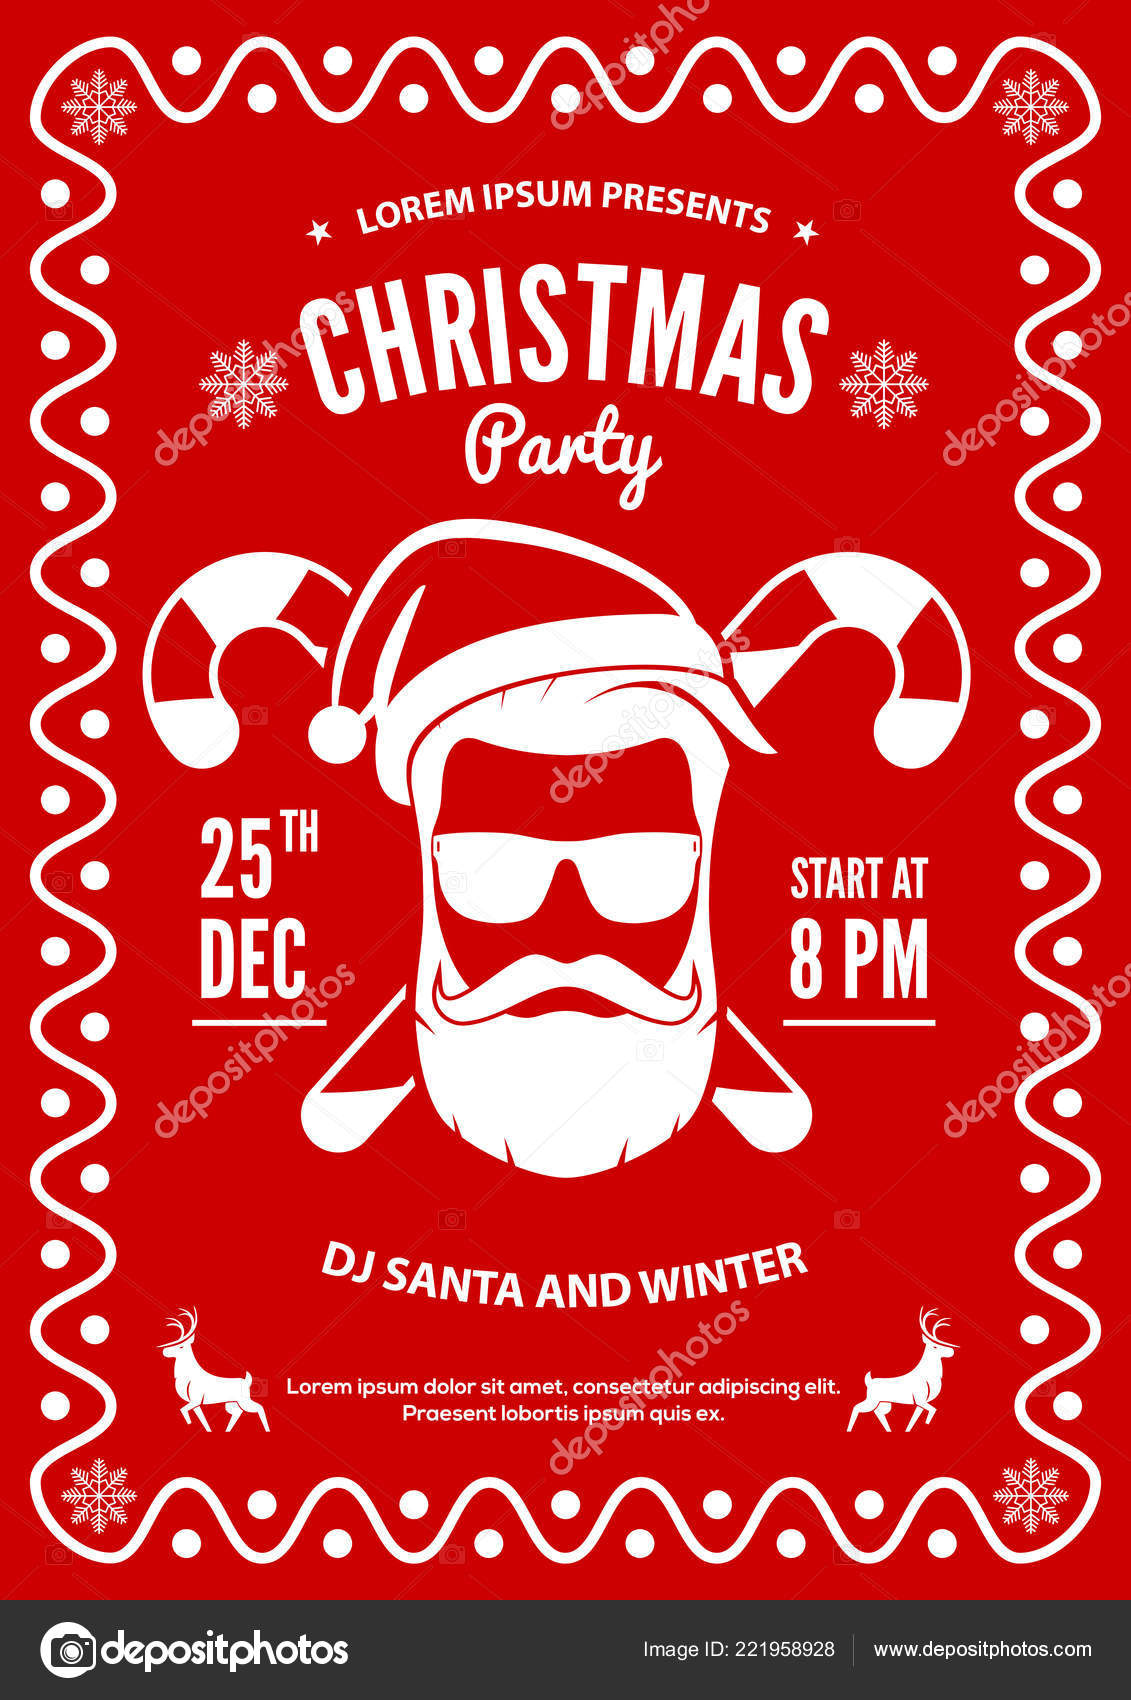 christmas party invitation flyer or poster design with santa claus